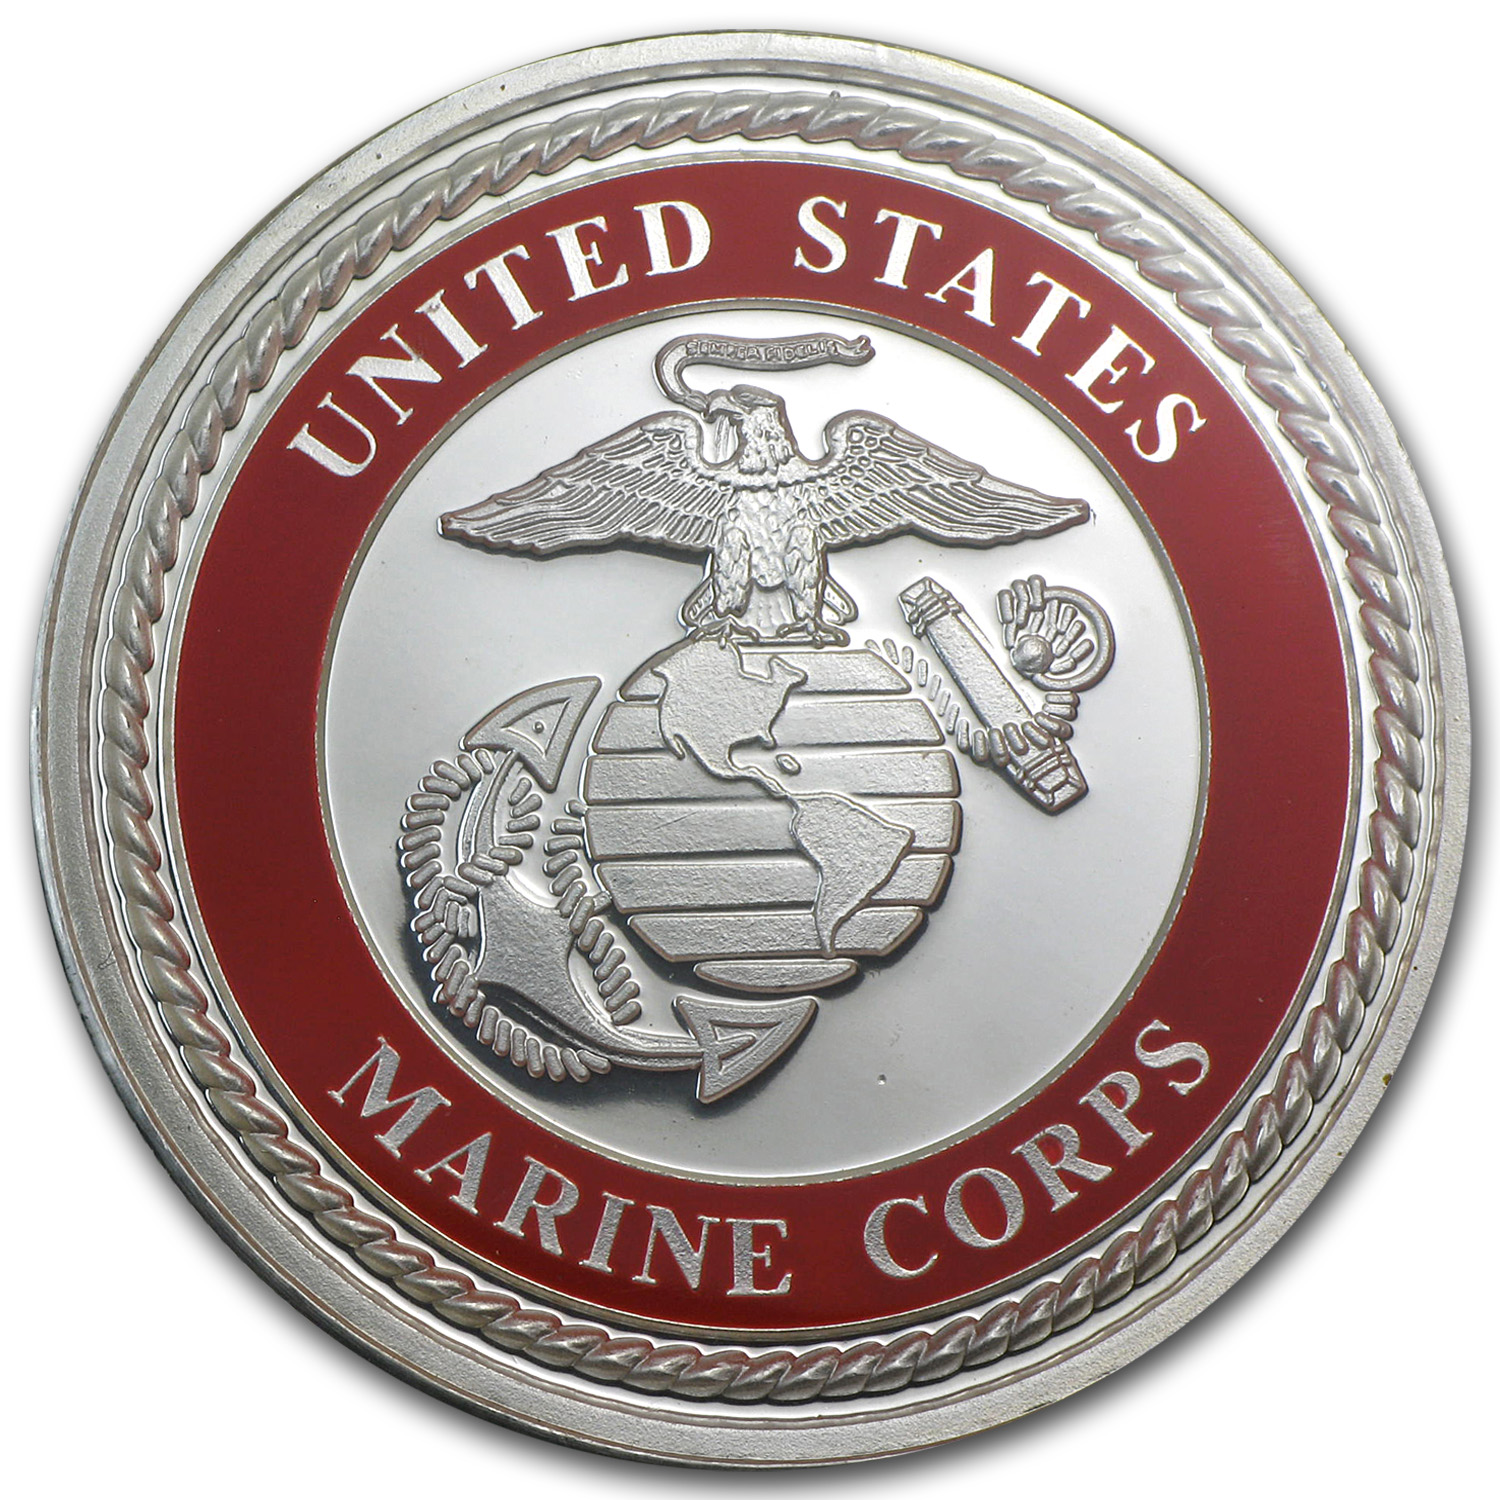 1 oz Silver Rounds - U.S. Marines Enameled (w/Box & Capsule)